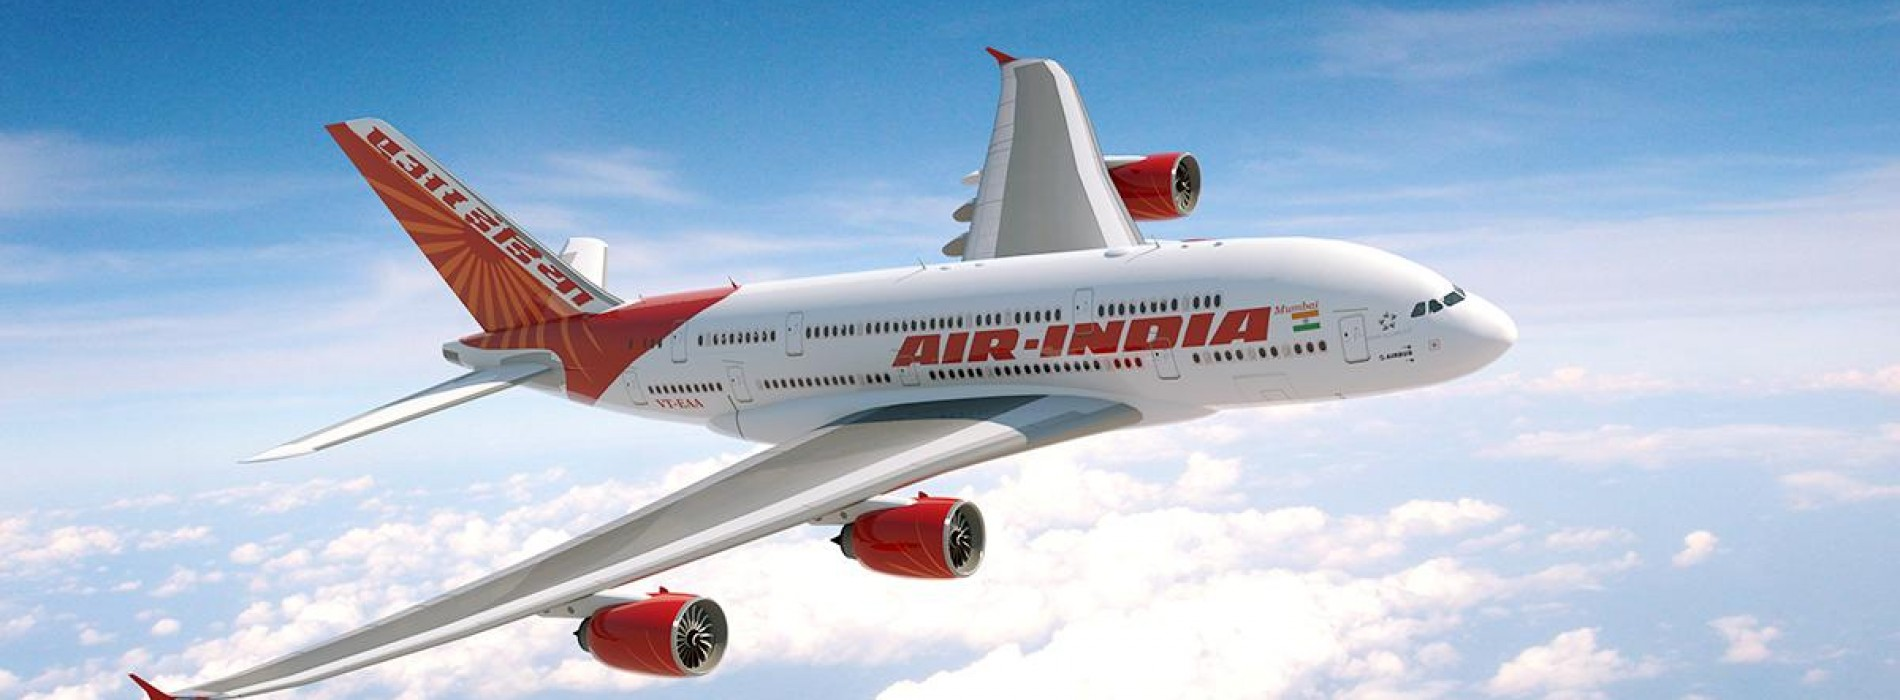 Air India cancels flight to accommodate Haj pilgrims